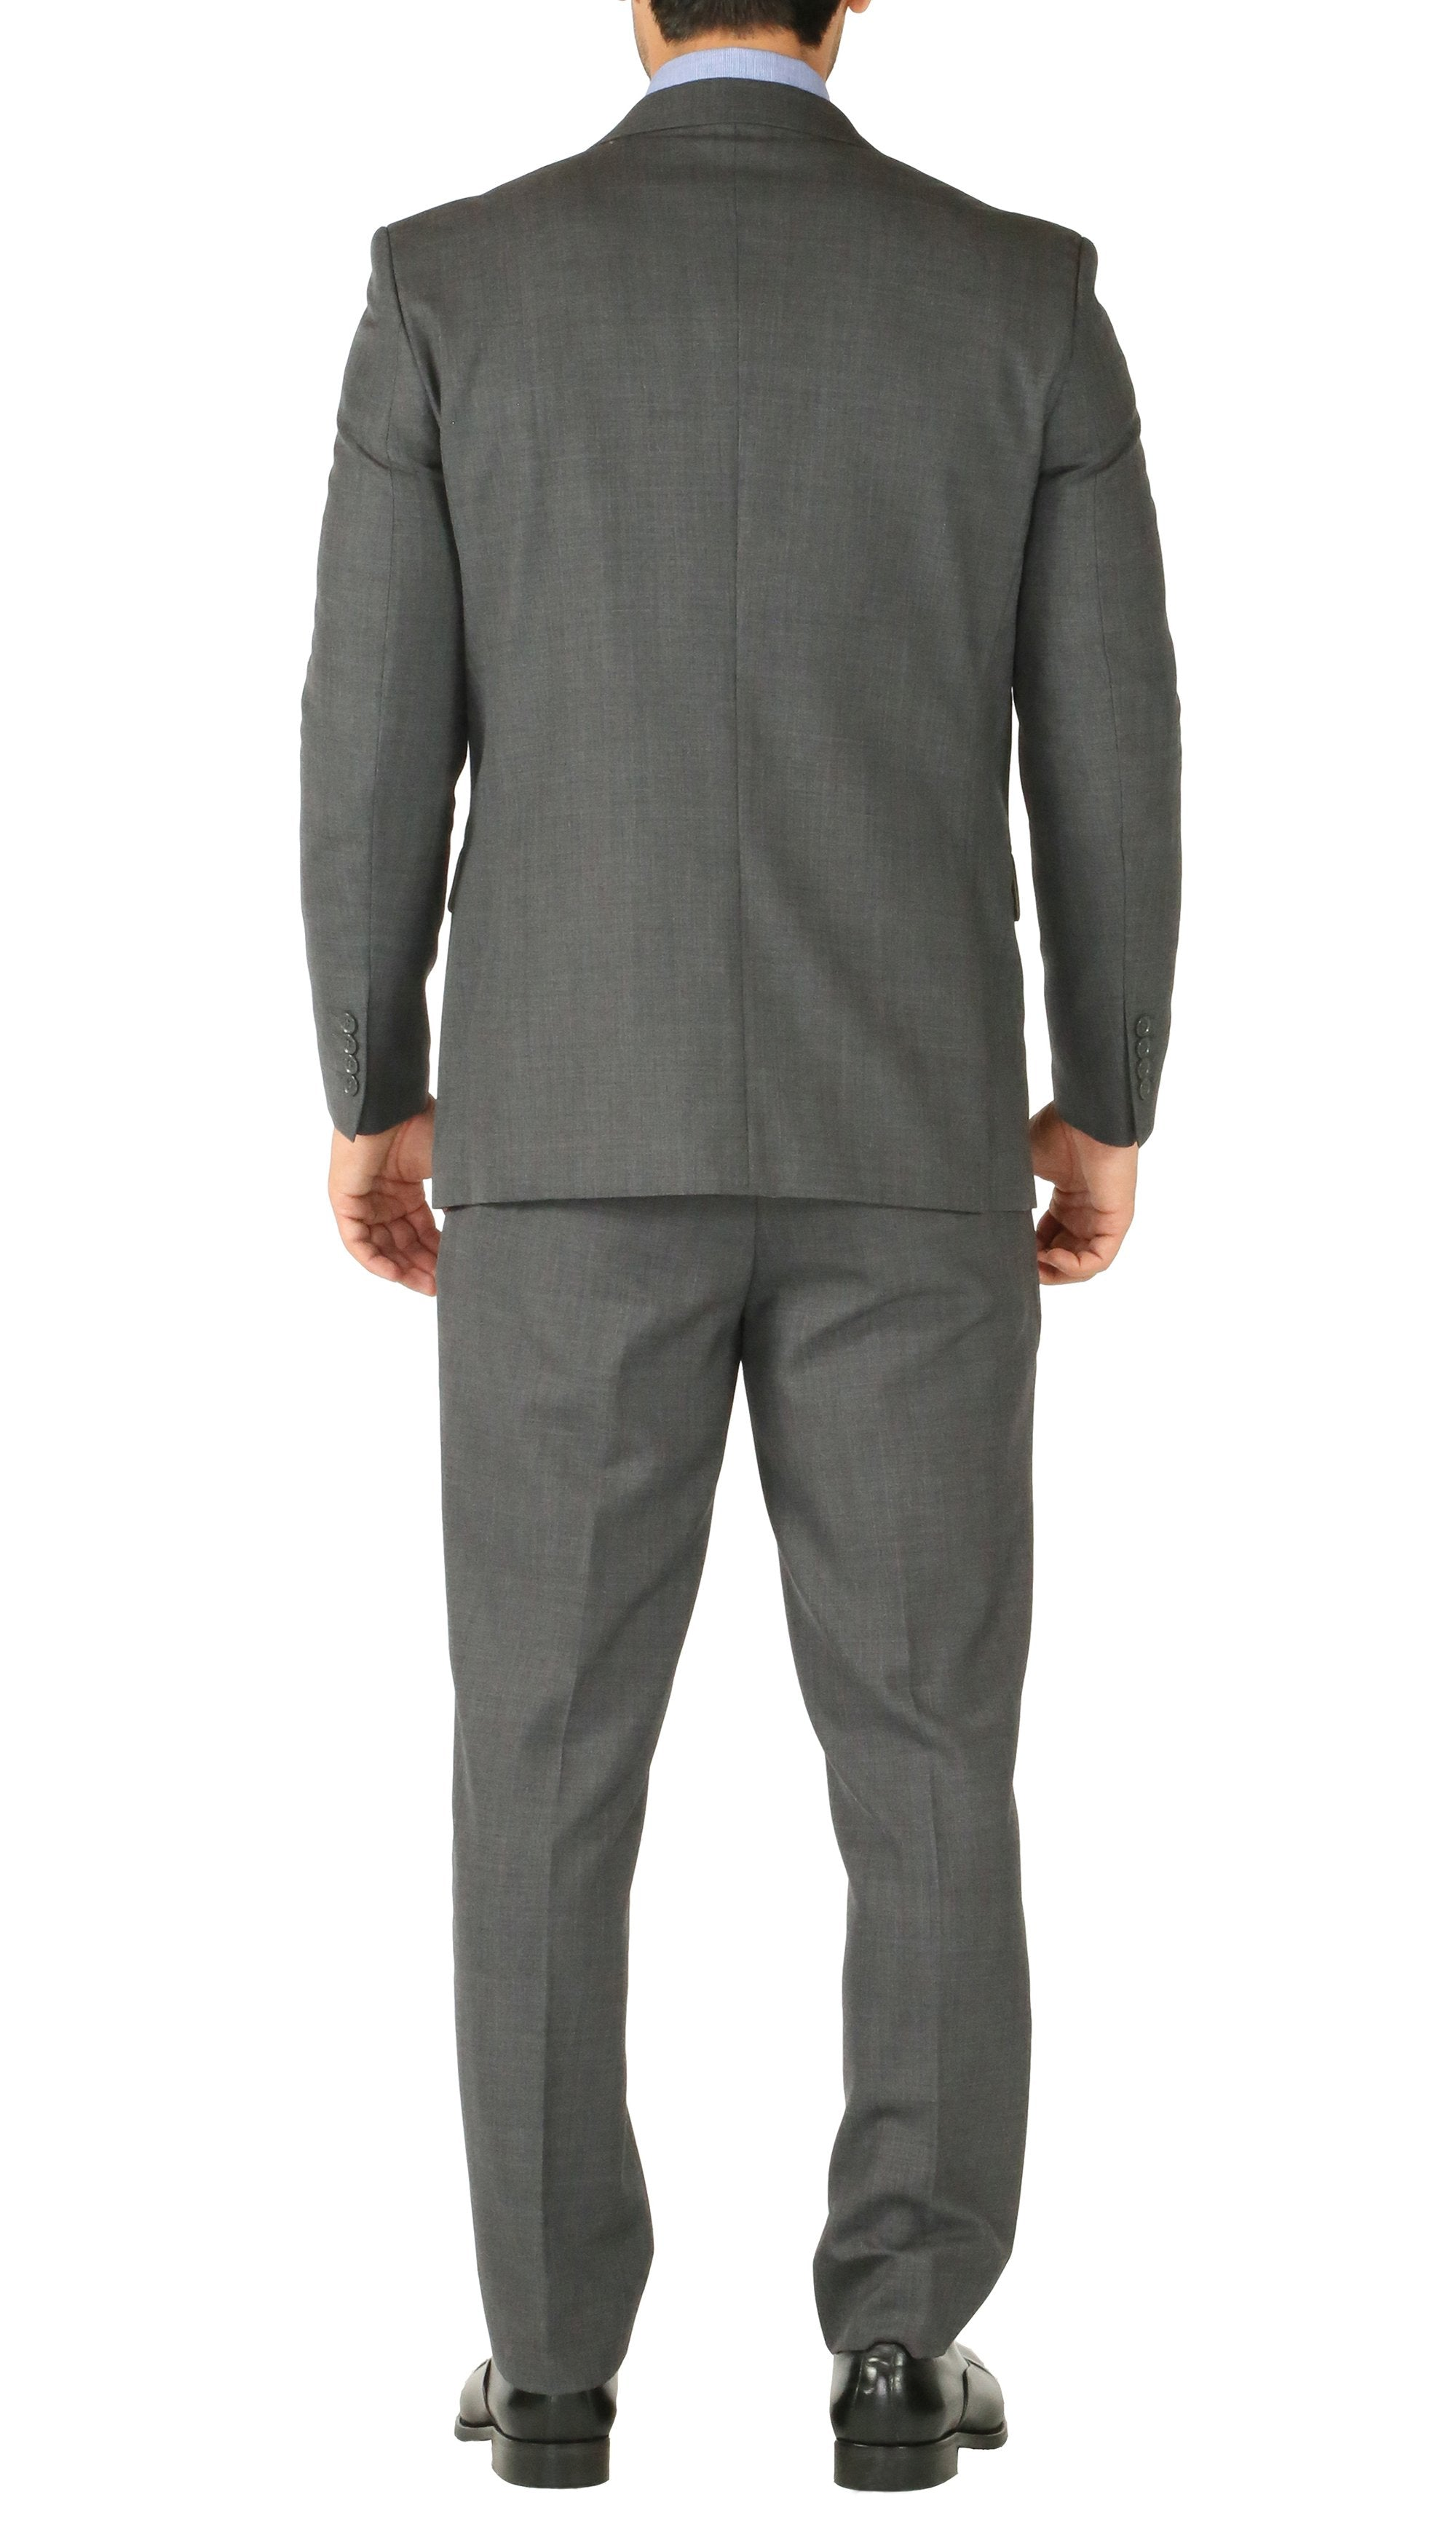 Rod Premium Grey Wool 2pc Stain Resistant Traveler Suit - w 2 Pairs of Pants - Giorgio's Menswear